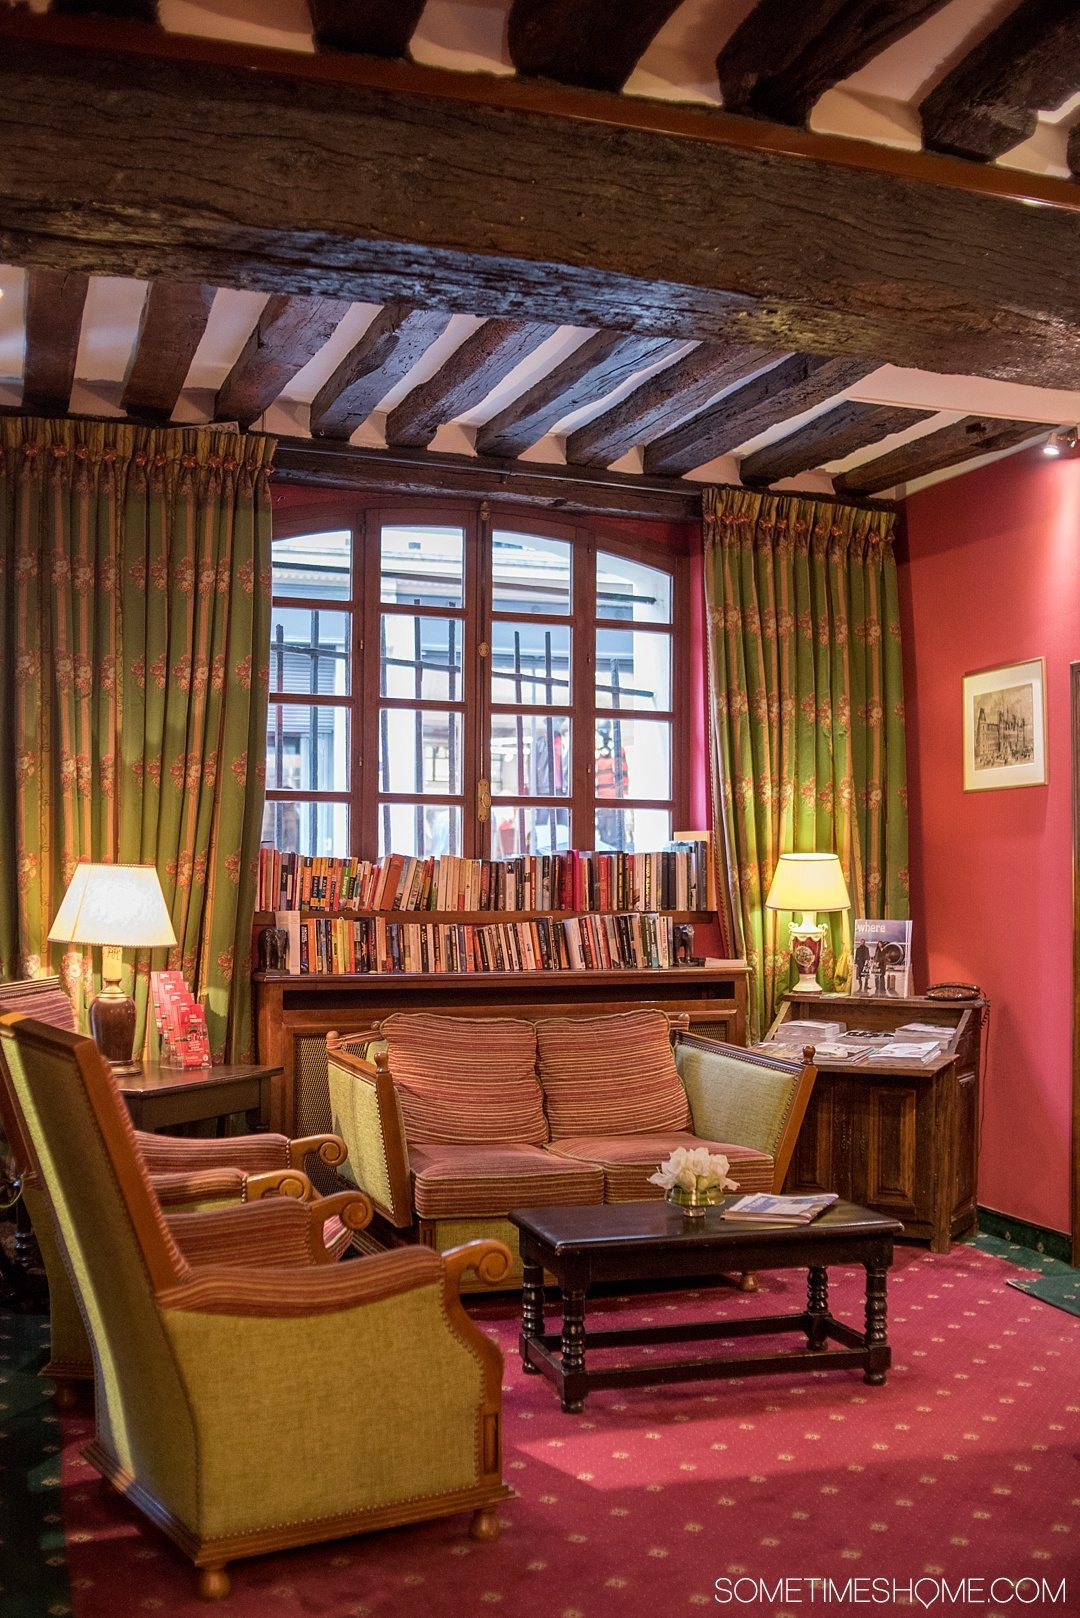 Paris hotel boutique accommodation with a lot of charm at very affordable prices in the historic Le Marais district. Click through to the article for a complete review!